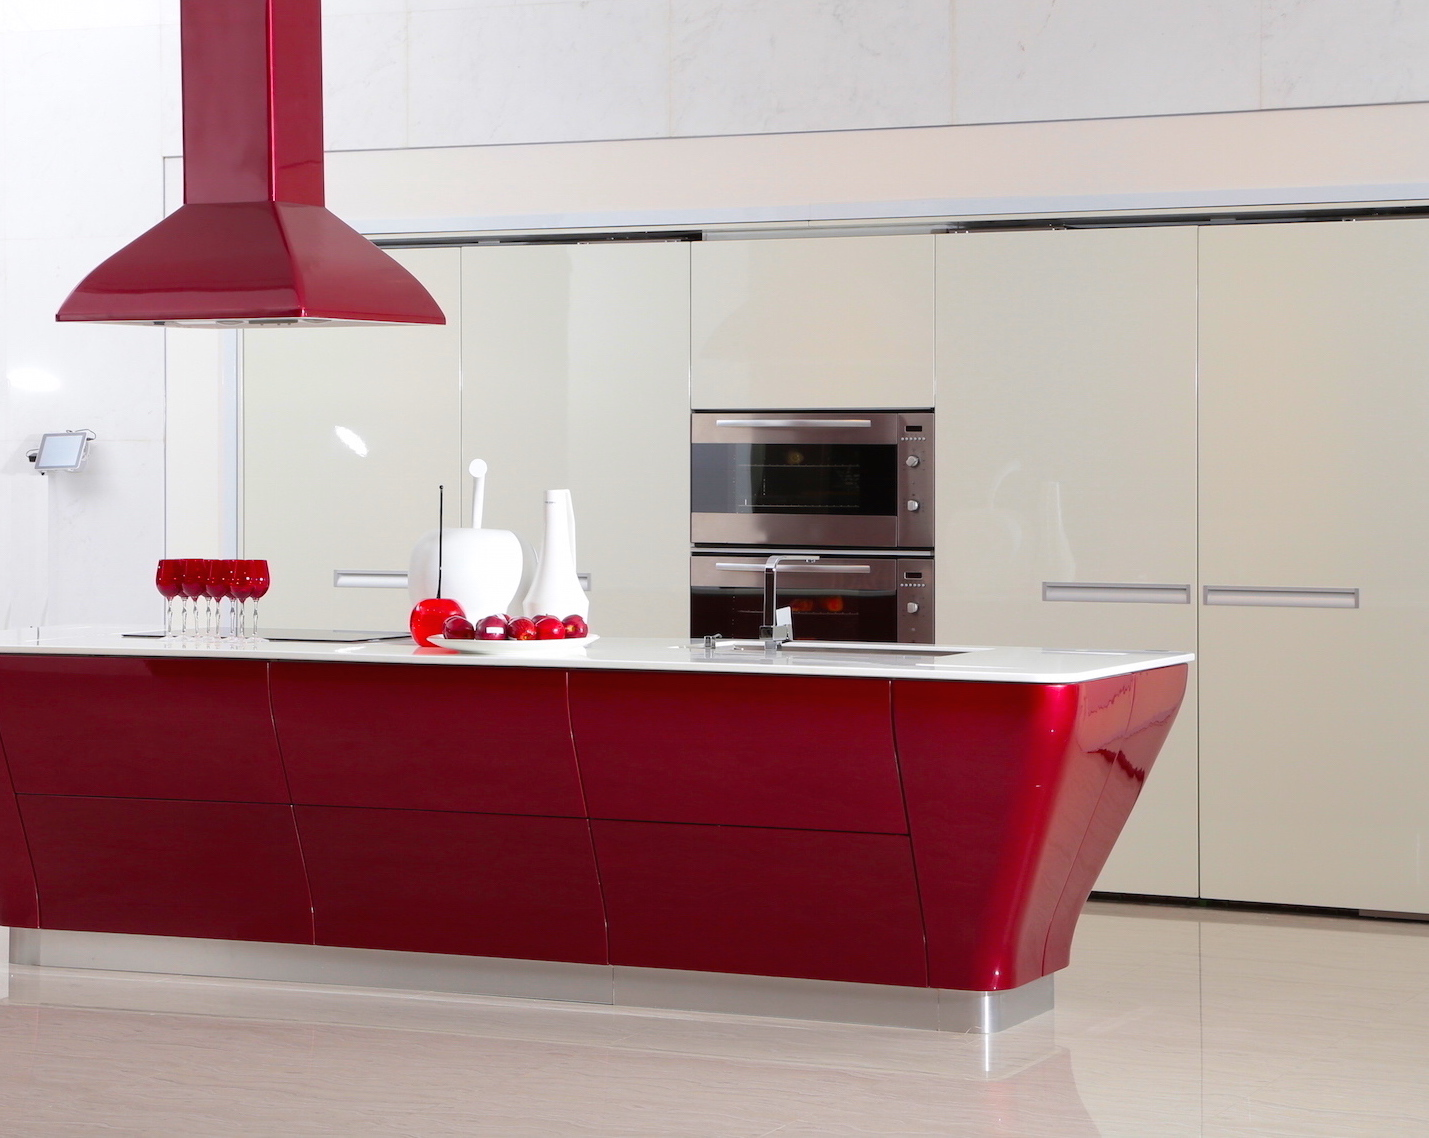 Kitchens and bathrooms direct - Direct Tile And Bath Kitchen Homepage Crop 2 Jpg